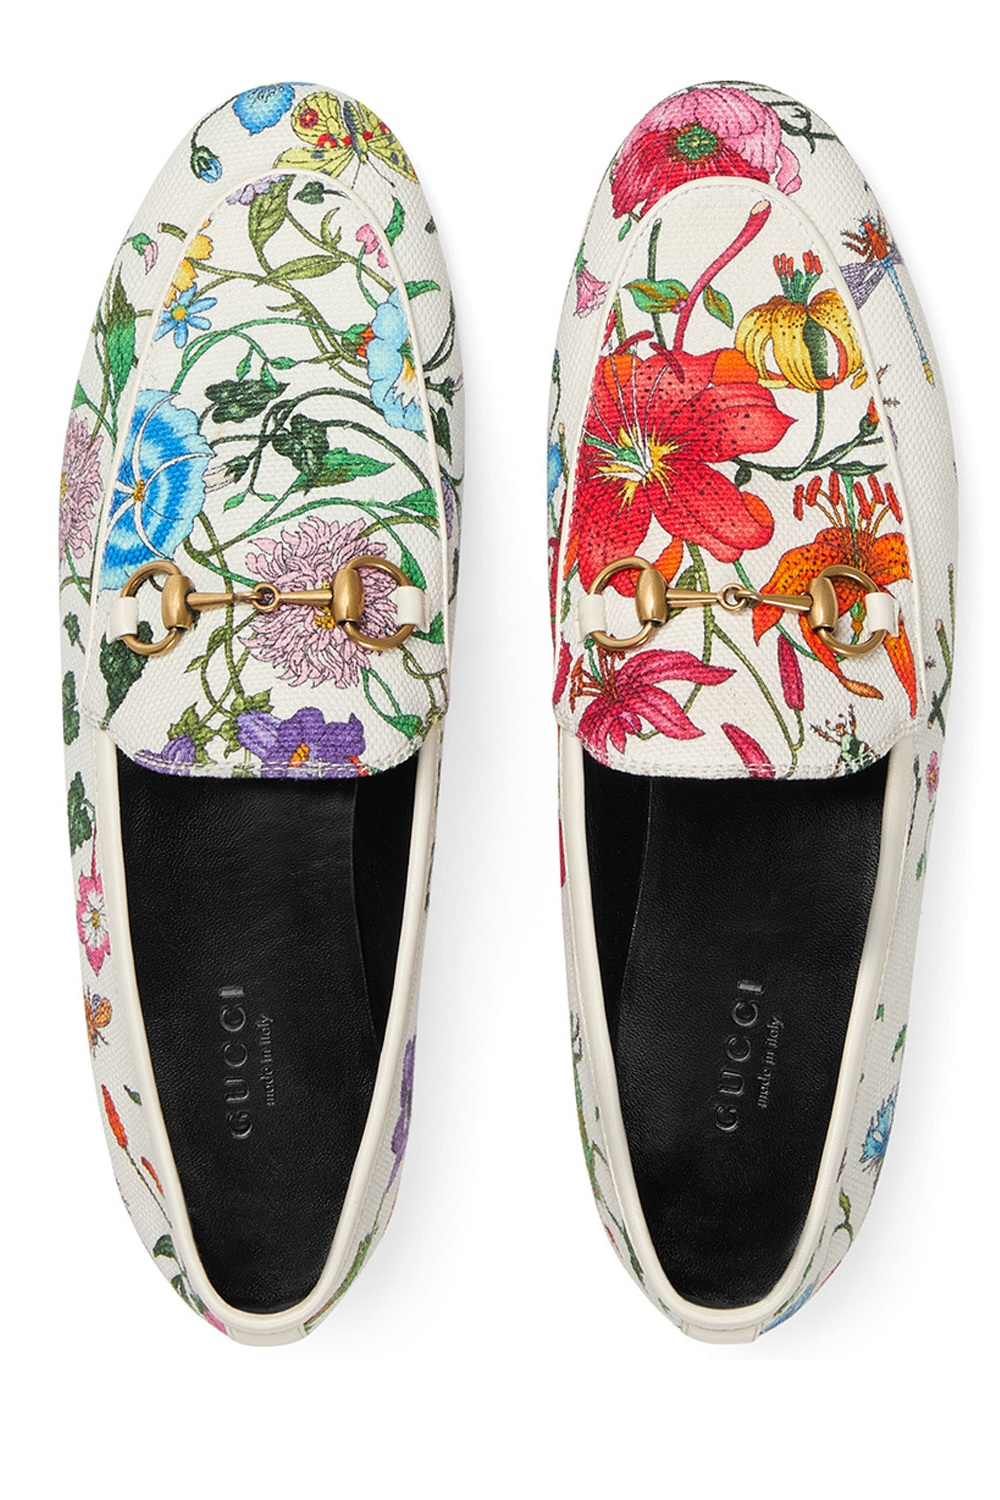 Gucci flat canvas loafers,  $695